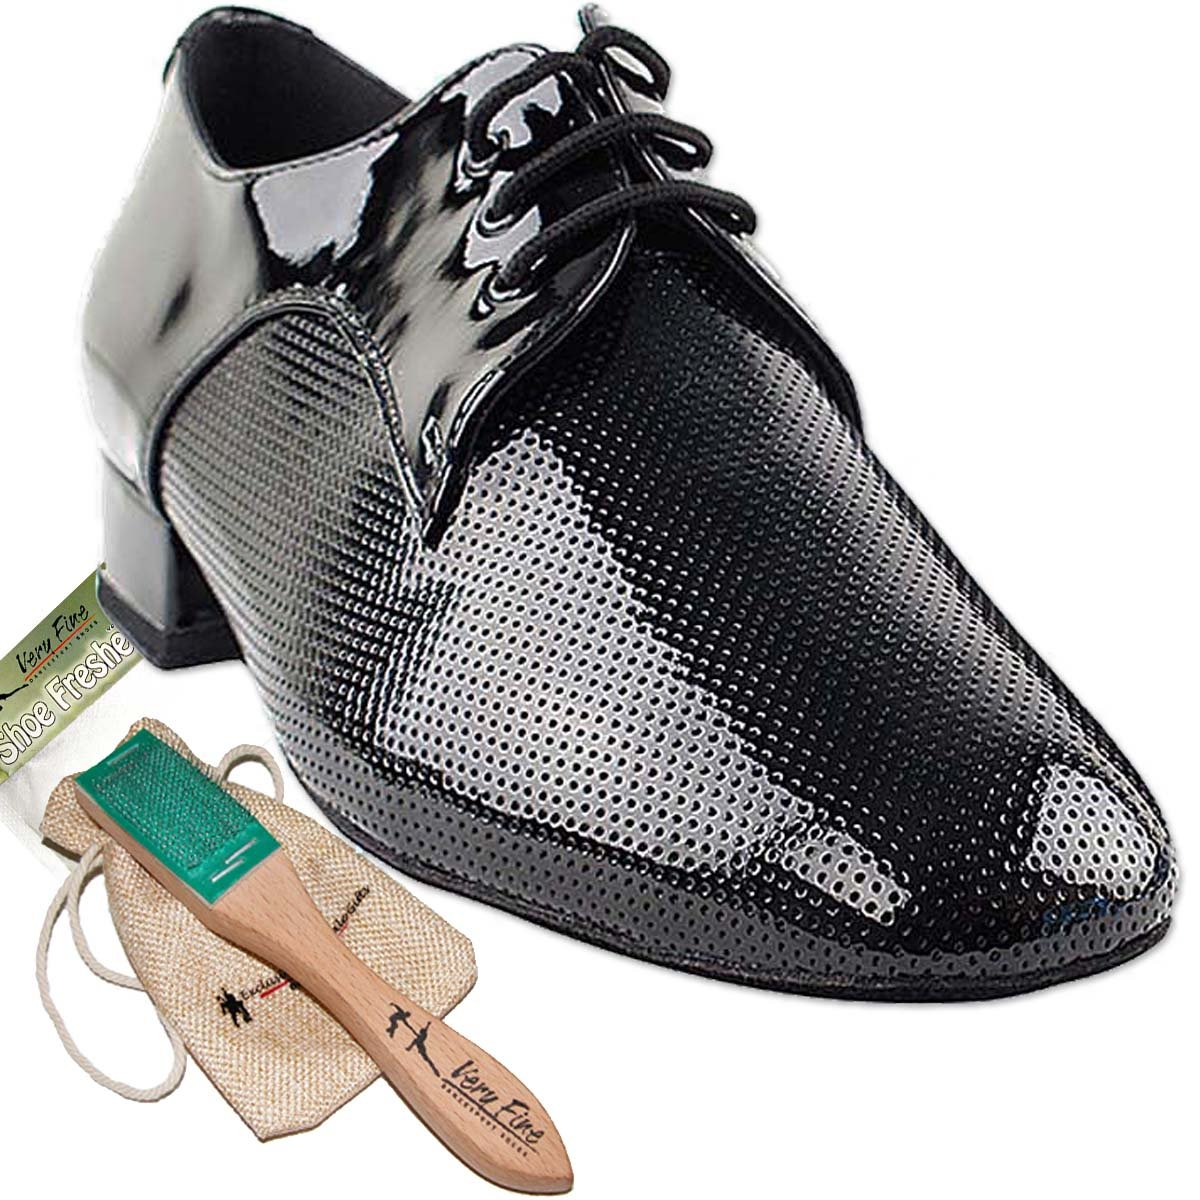 [Very Fine Dance Shoes] メンズ B076FP8RGR 11.5 D(M) US|ブラックパテント ブラックパテント 11.5 D(M) US